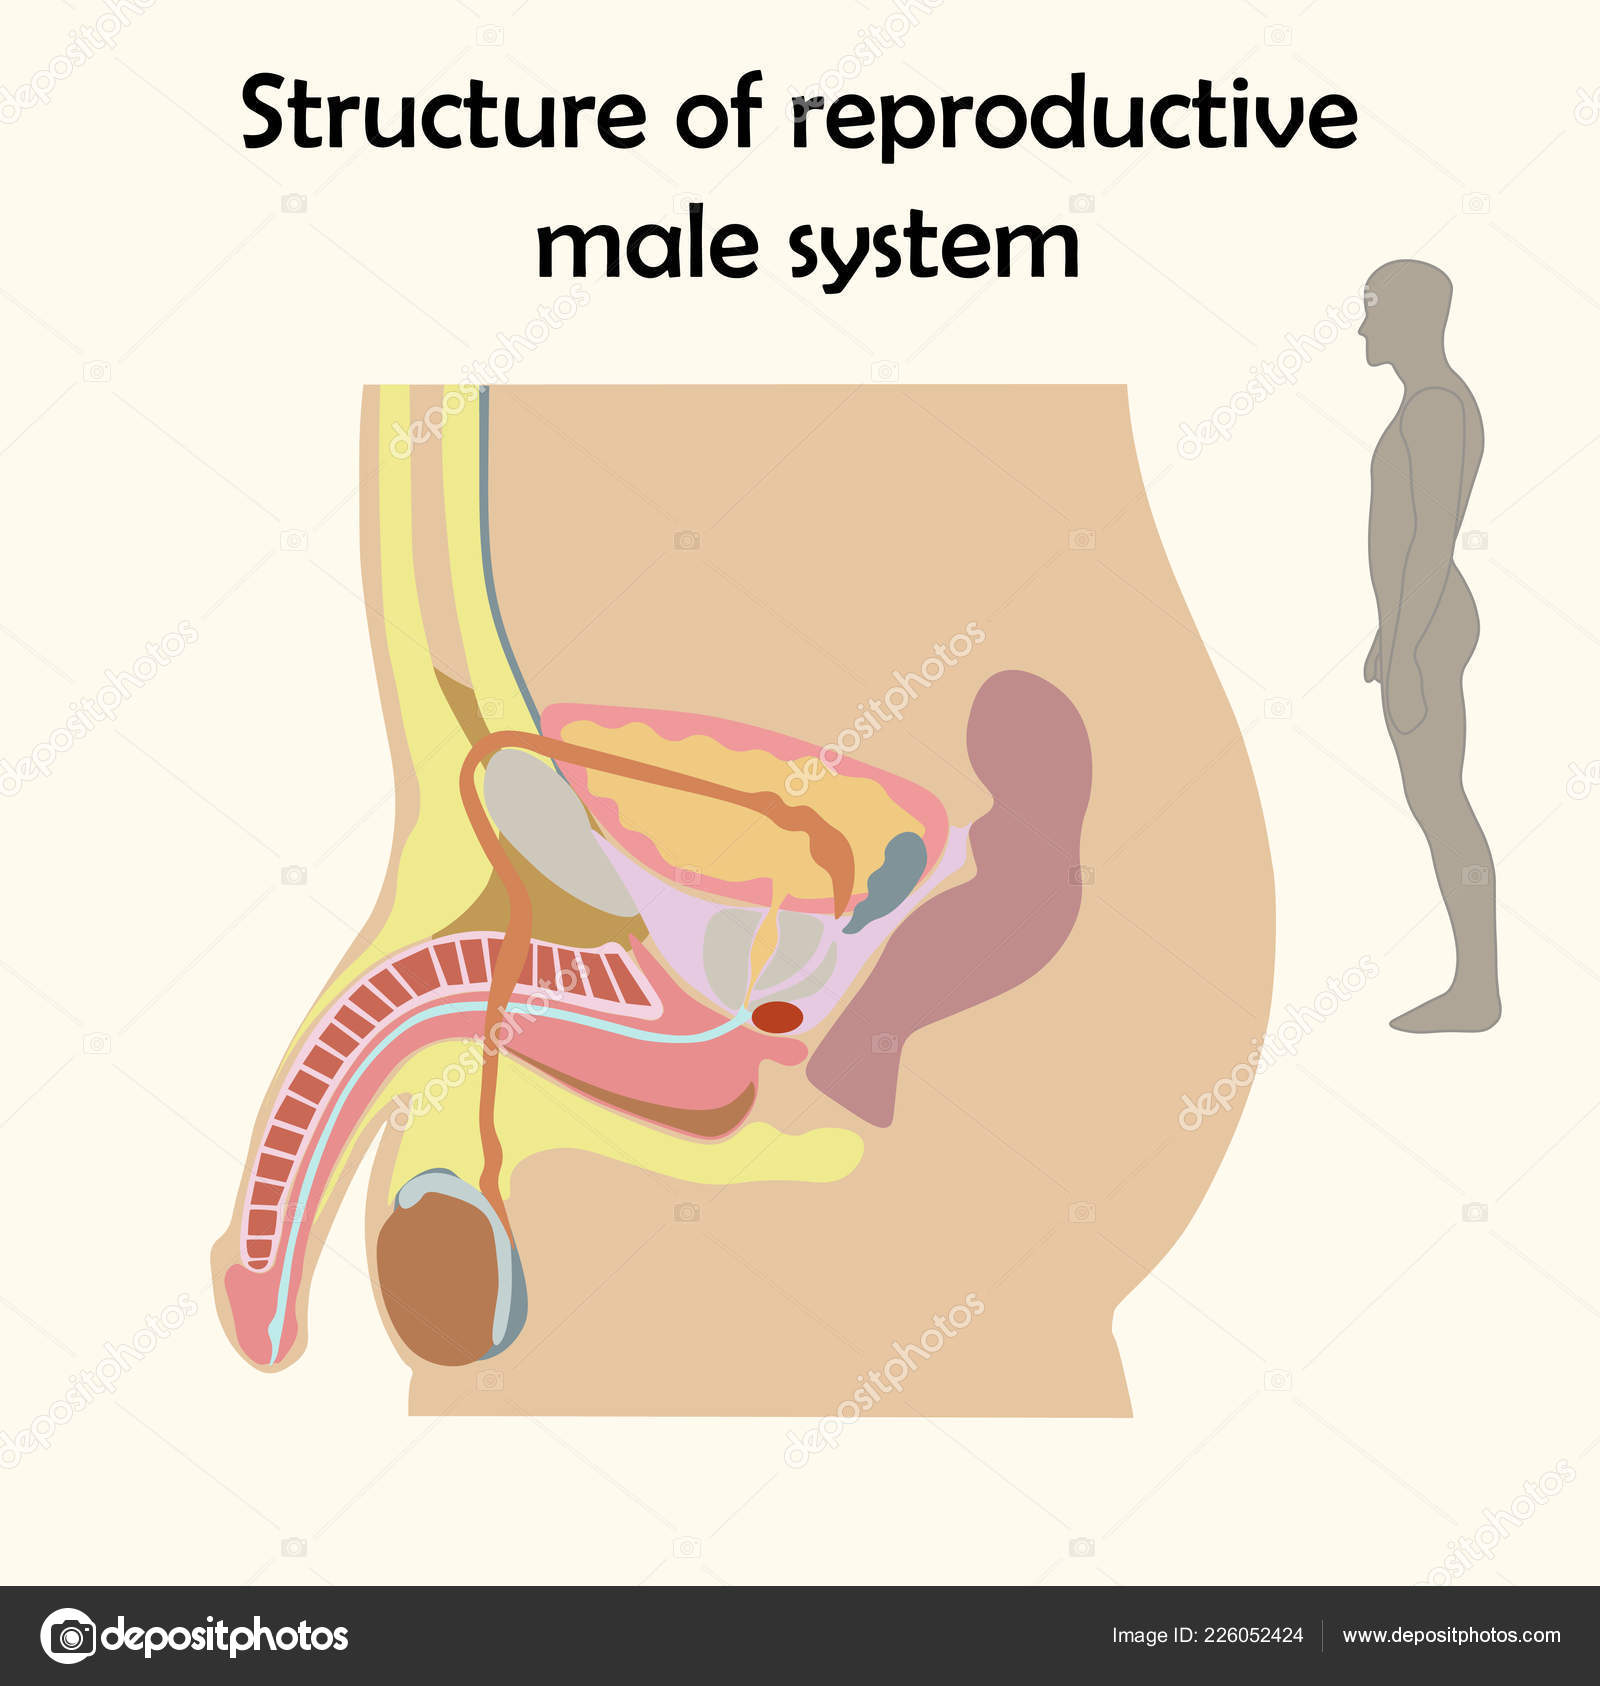 Education Chart of Biology for Male Reproductive System ... on nervous system diagram, circulatory system diagram, the endocrine system diagram, bull reproductive tract diagram, male digestive tract diagram, musculoskeletal system diagram, immune system diagram, cardiovascular system diagram, spermatogenesis diagram, pituitary system diagram, male reproductive function, skeletal system diagram, male skeletal system human skeleton, digestive system diagram, heart diagram, respiratory system diagram,